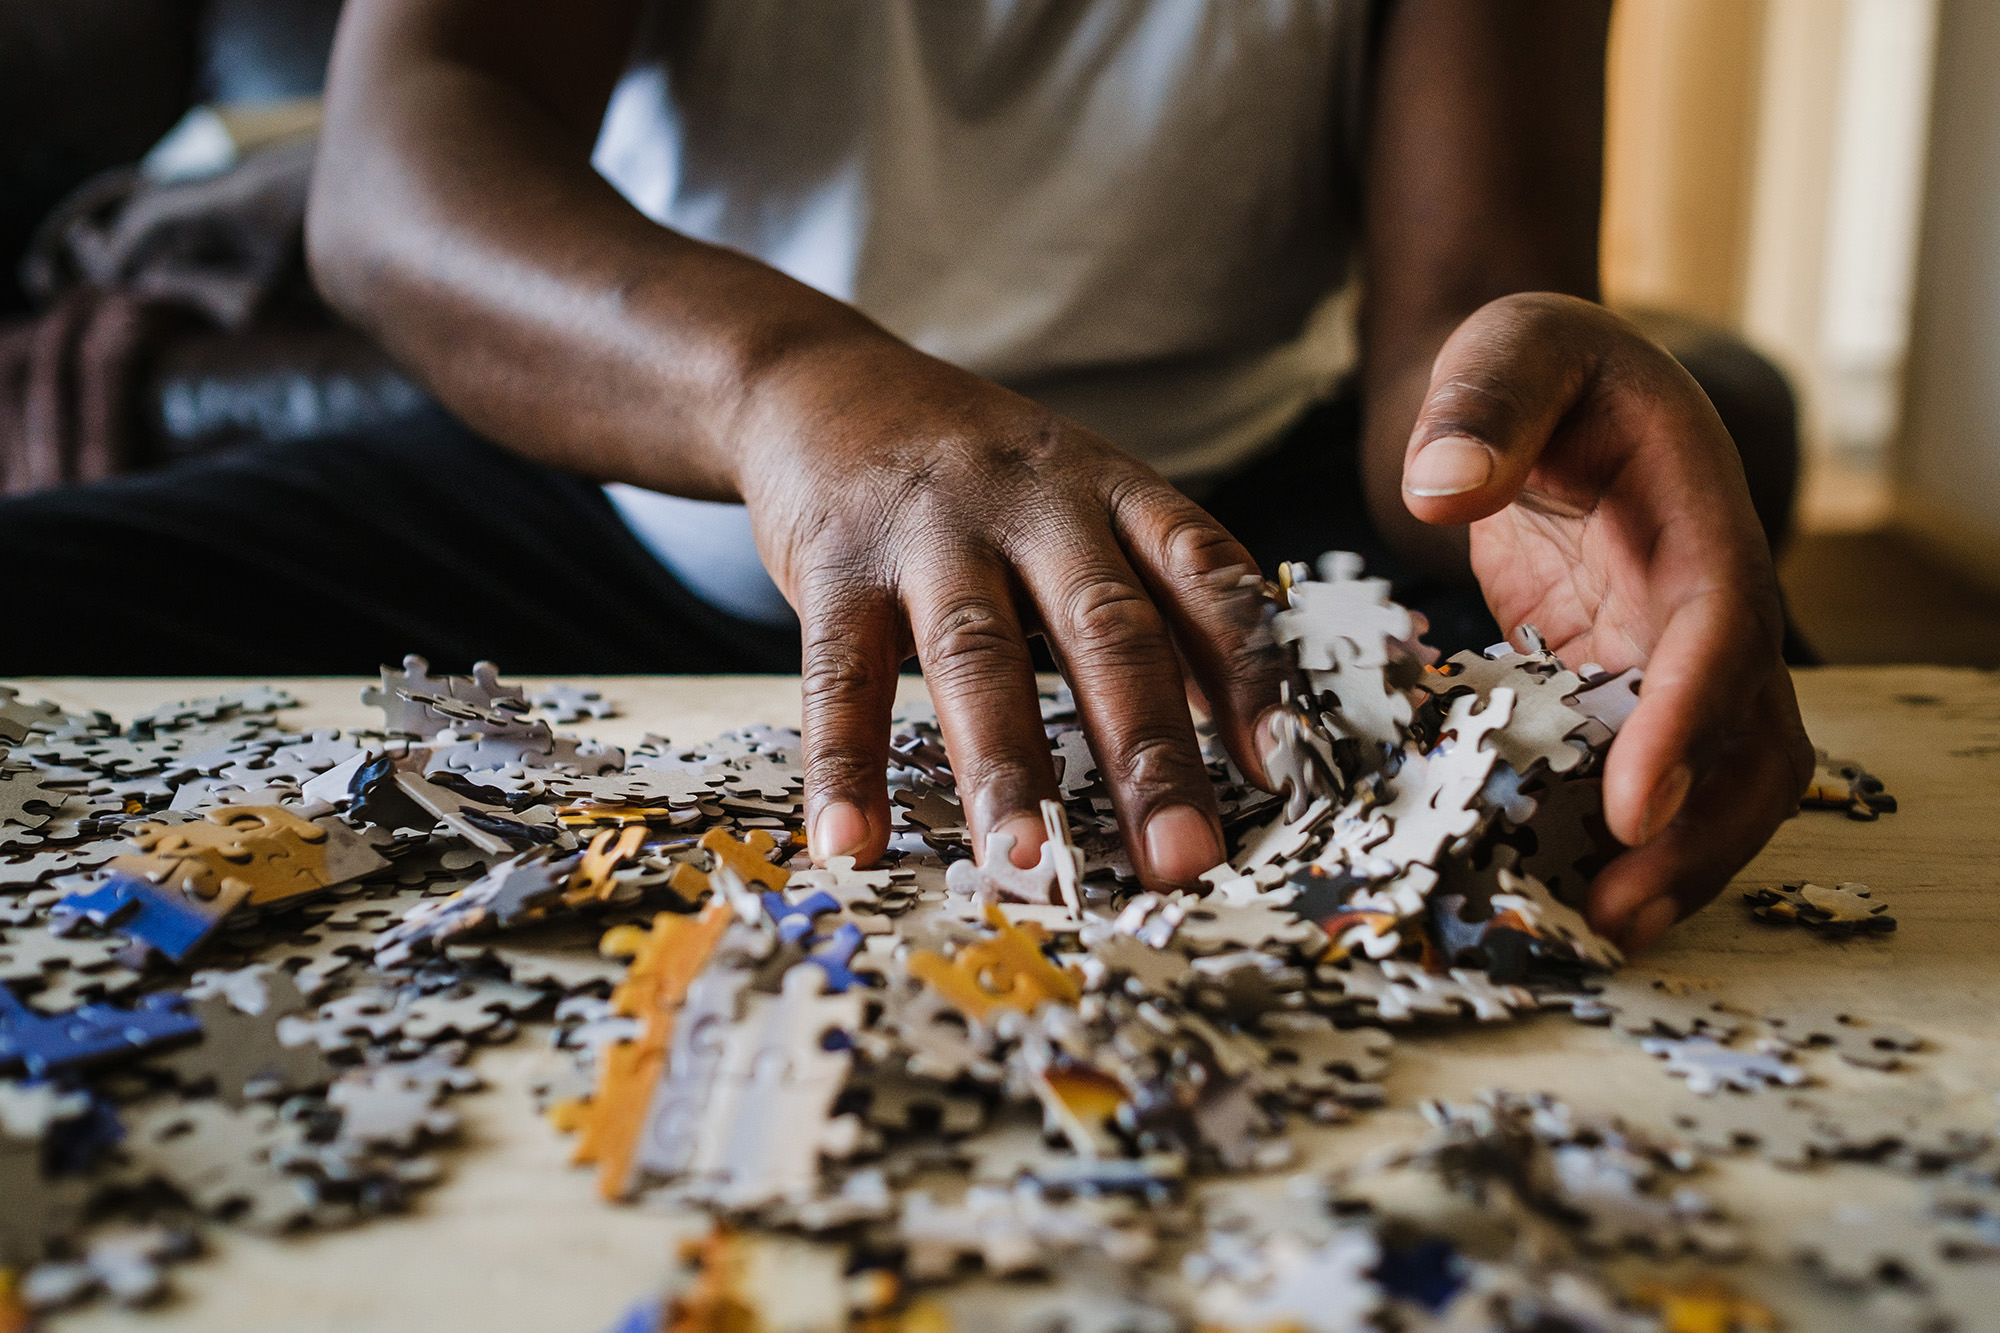 destroying a puzzle during self isolation